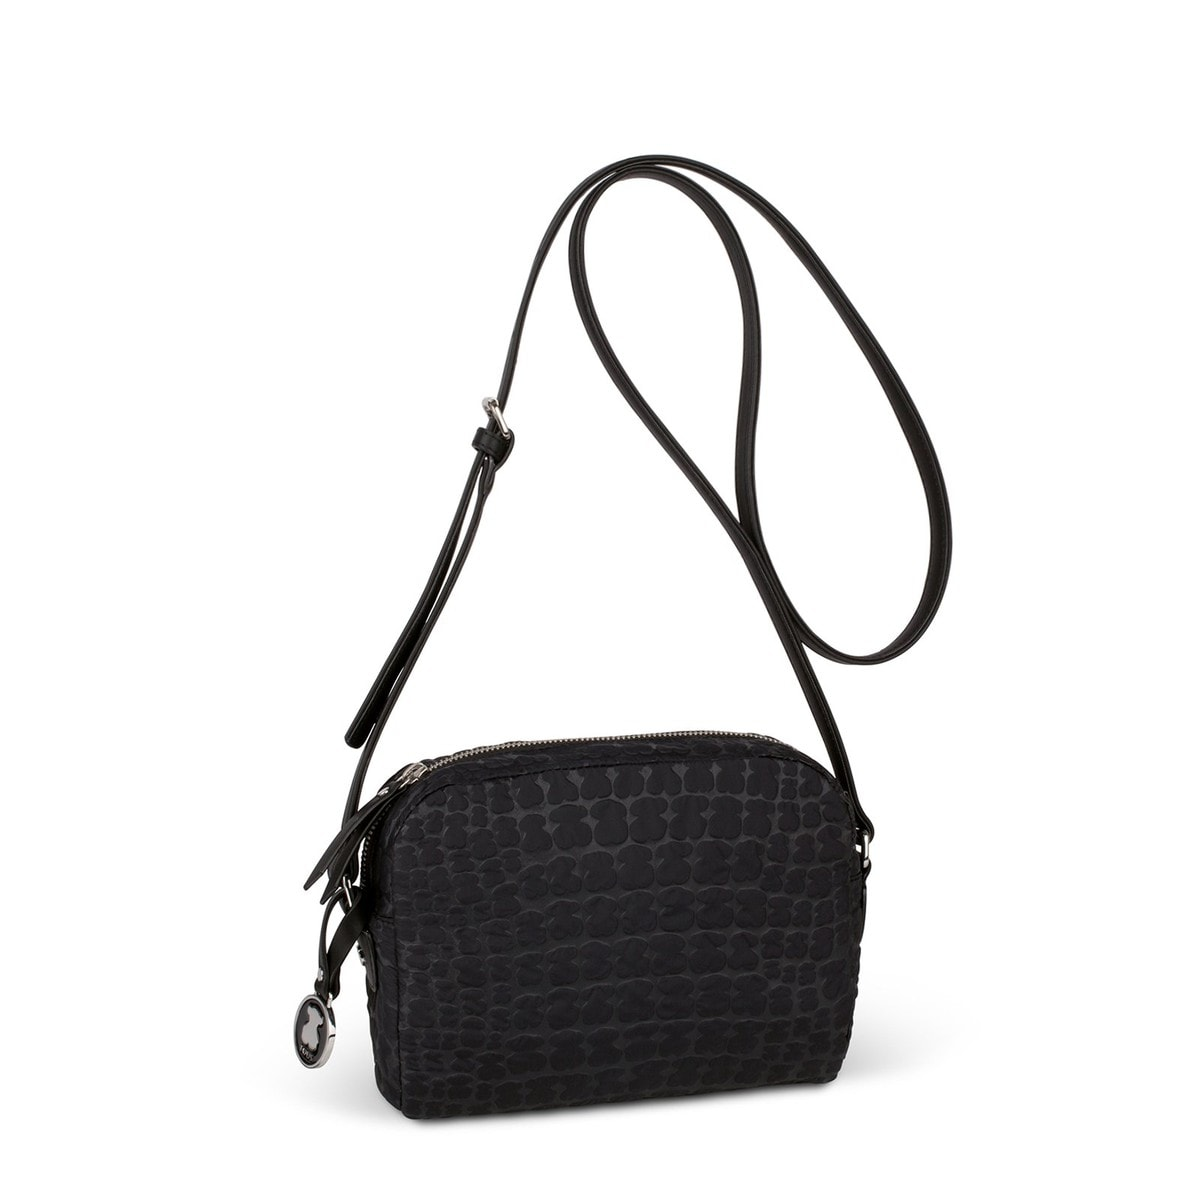 780733ed0e5 Black Canvas Sherton Nylon Crossbody bag - Tous Site US